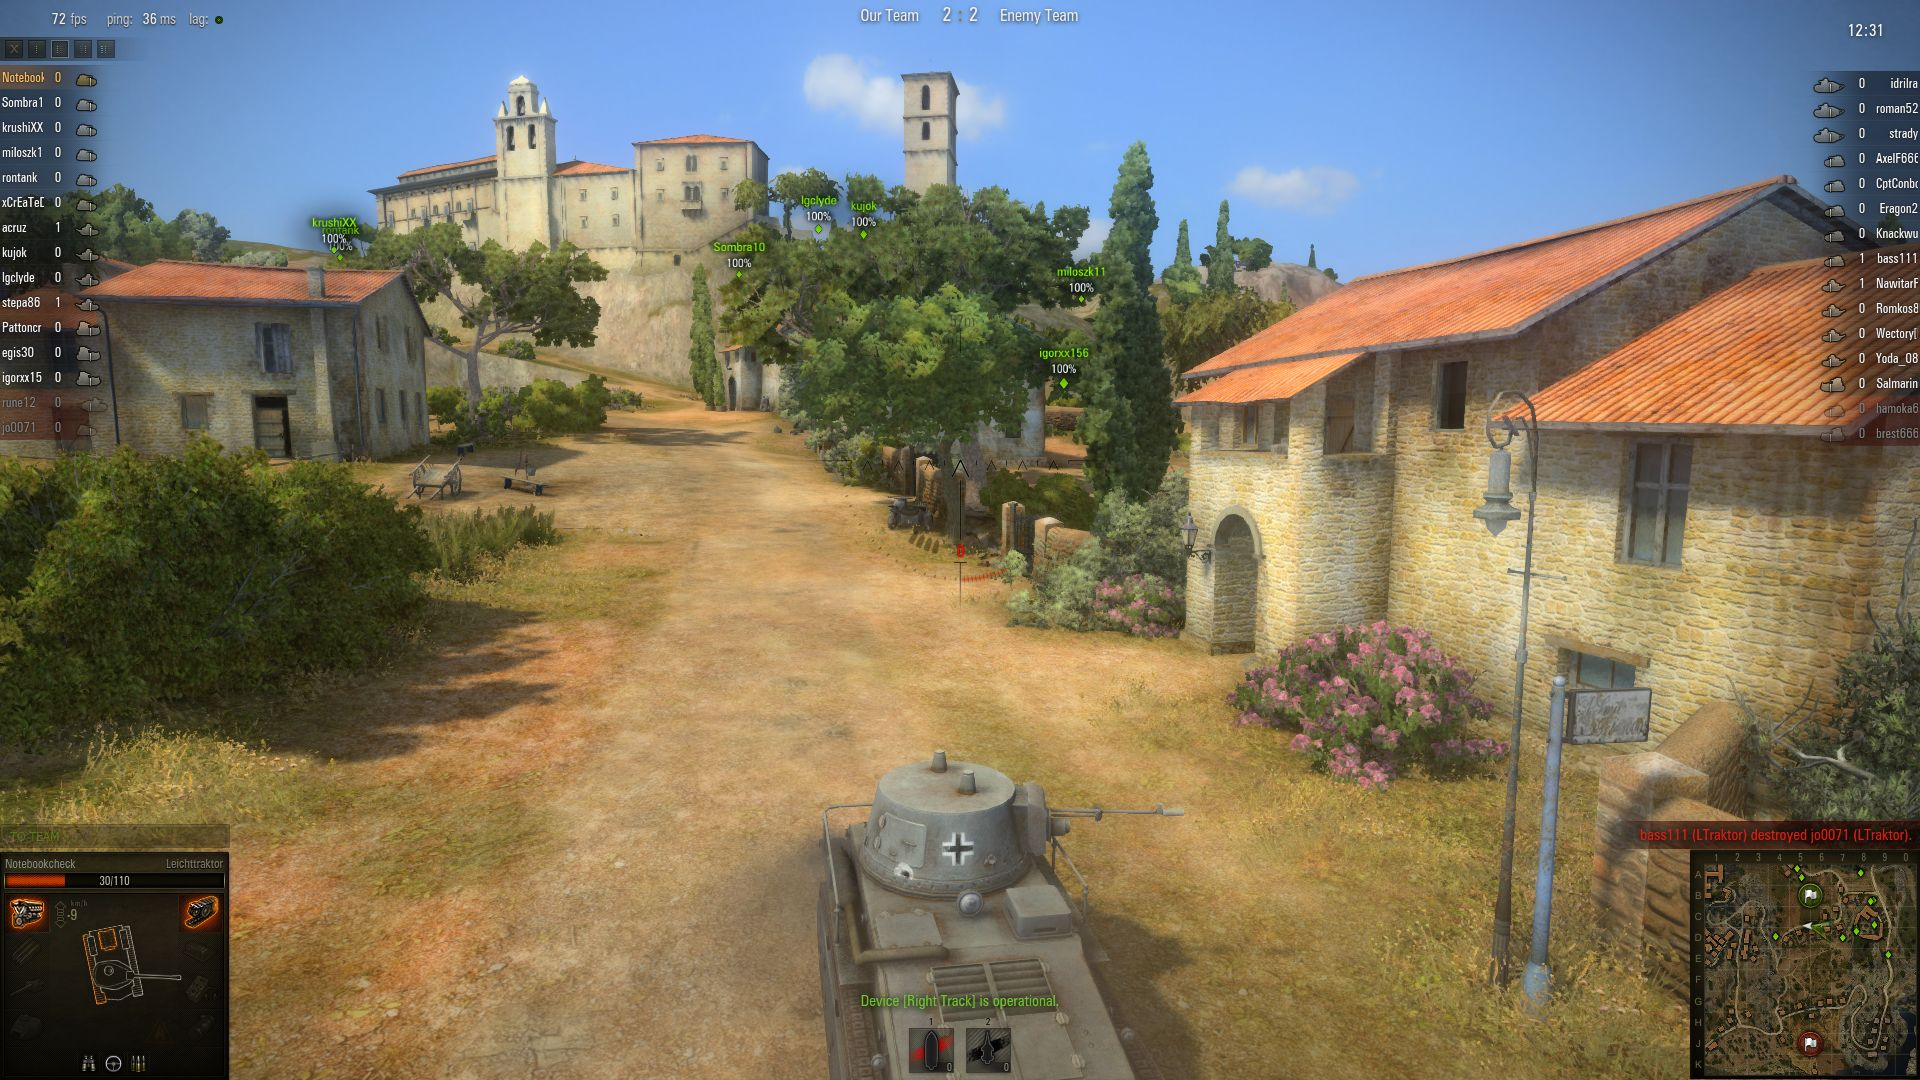 World of tanks v80 benchmarked notebookcheck reviews some maps are quite idyllic gumiabroncs Choice Image